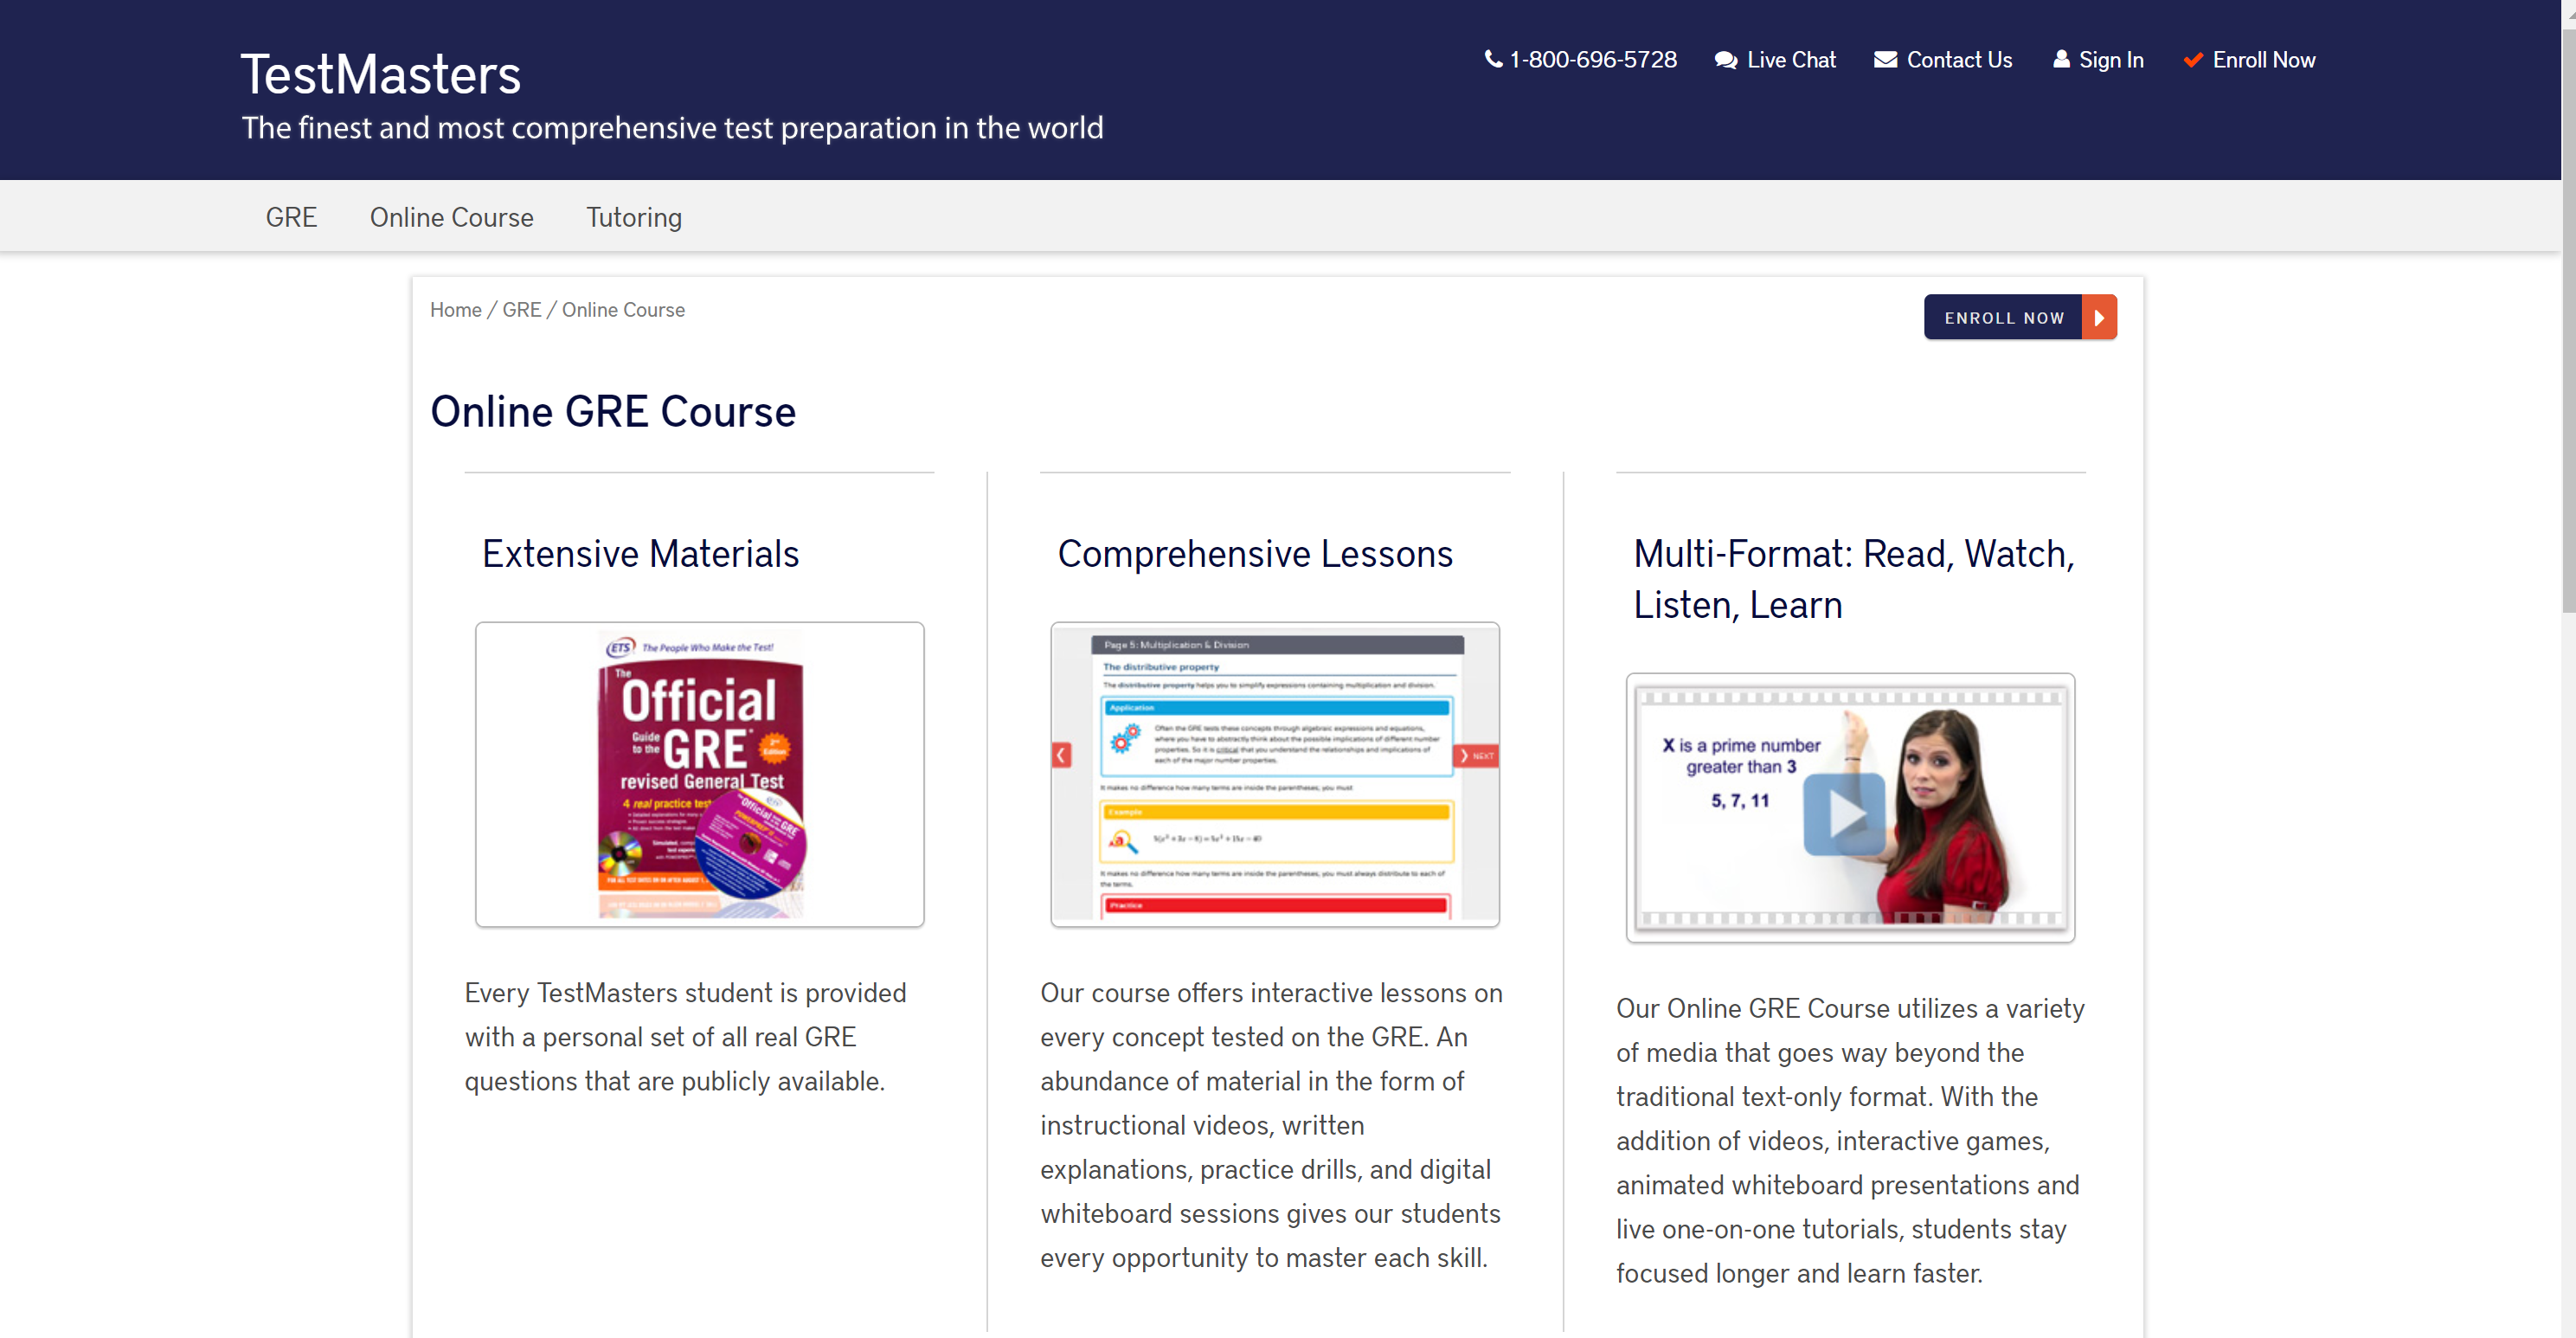 TestMasters GRE Prep courses